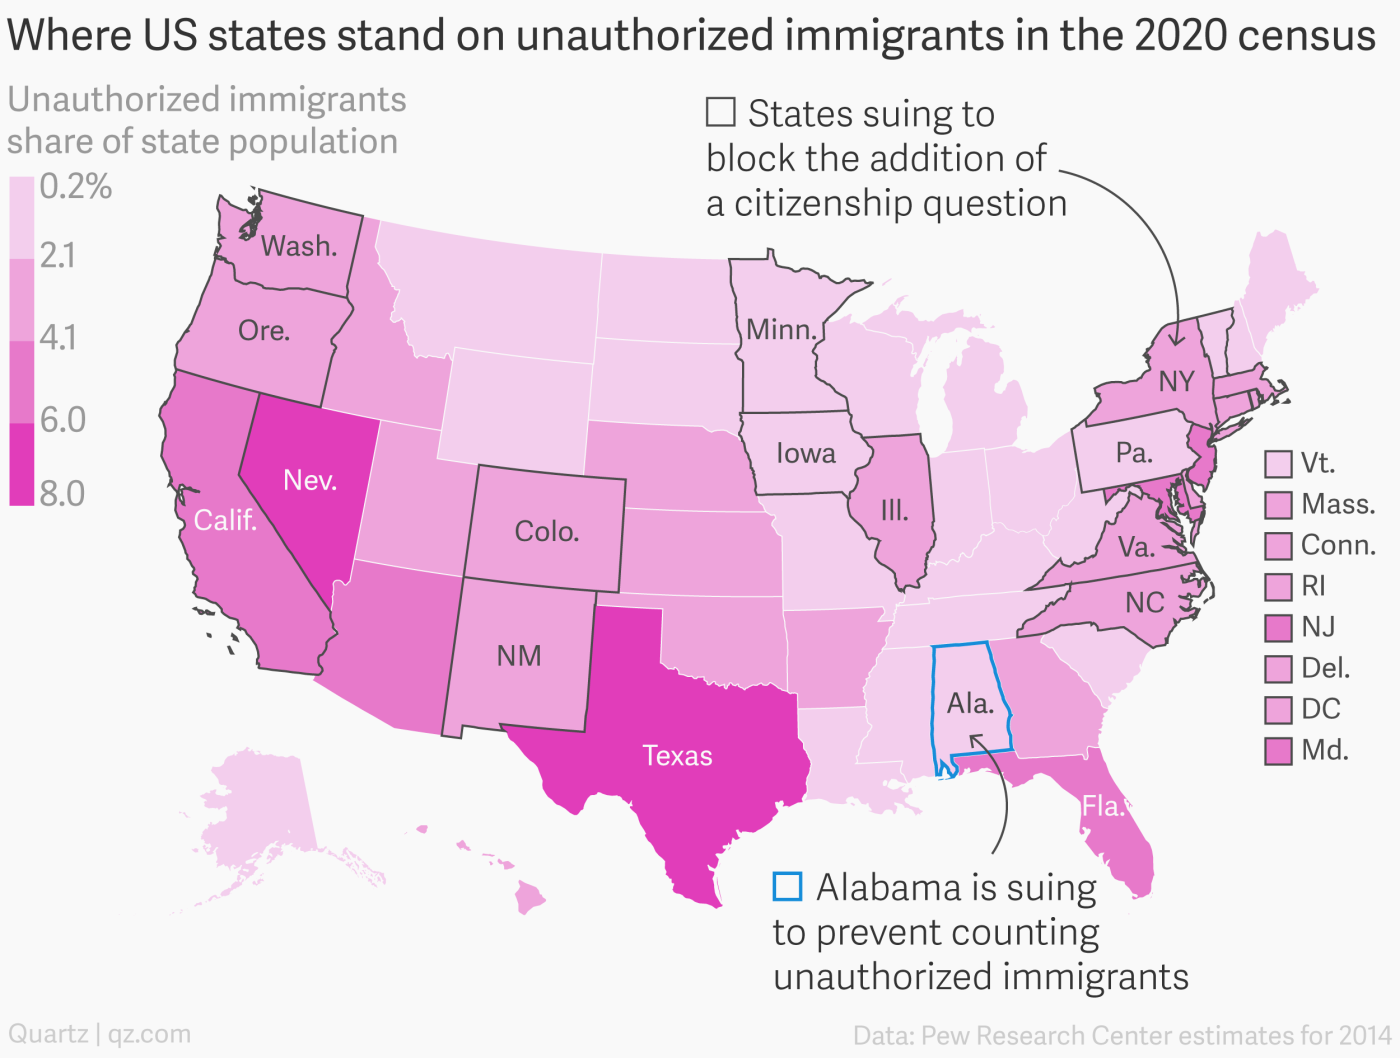 2020 Census Alabama Wants To Exclude Illegal Immigrants